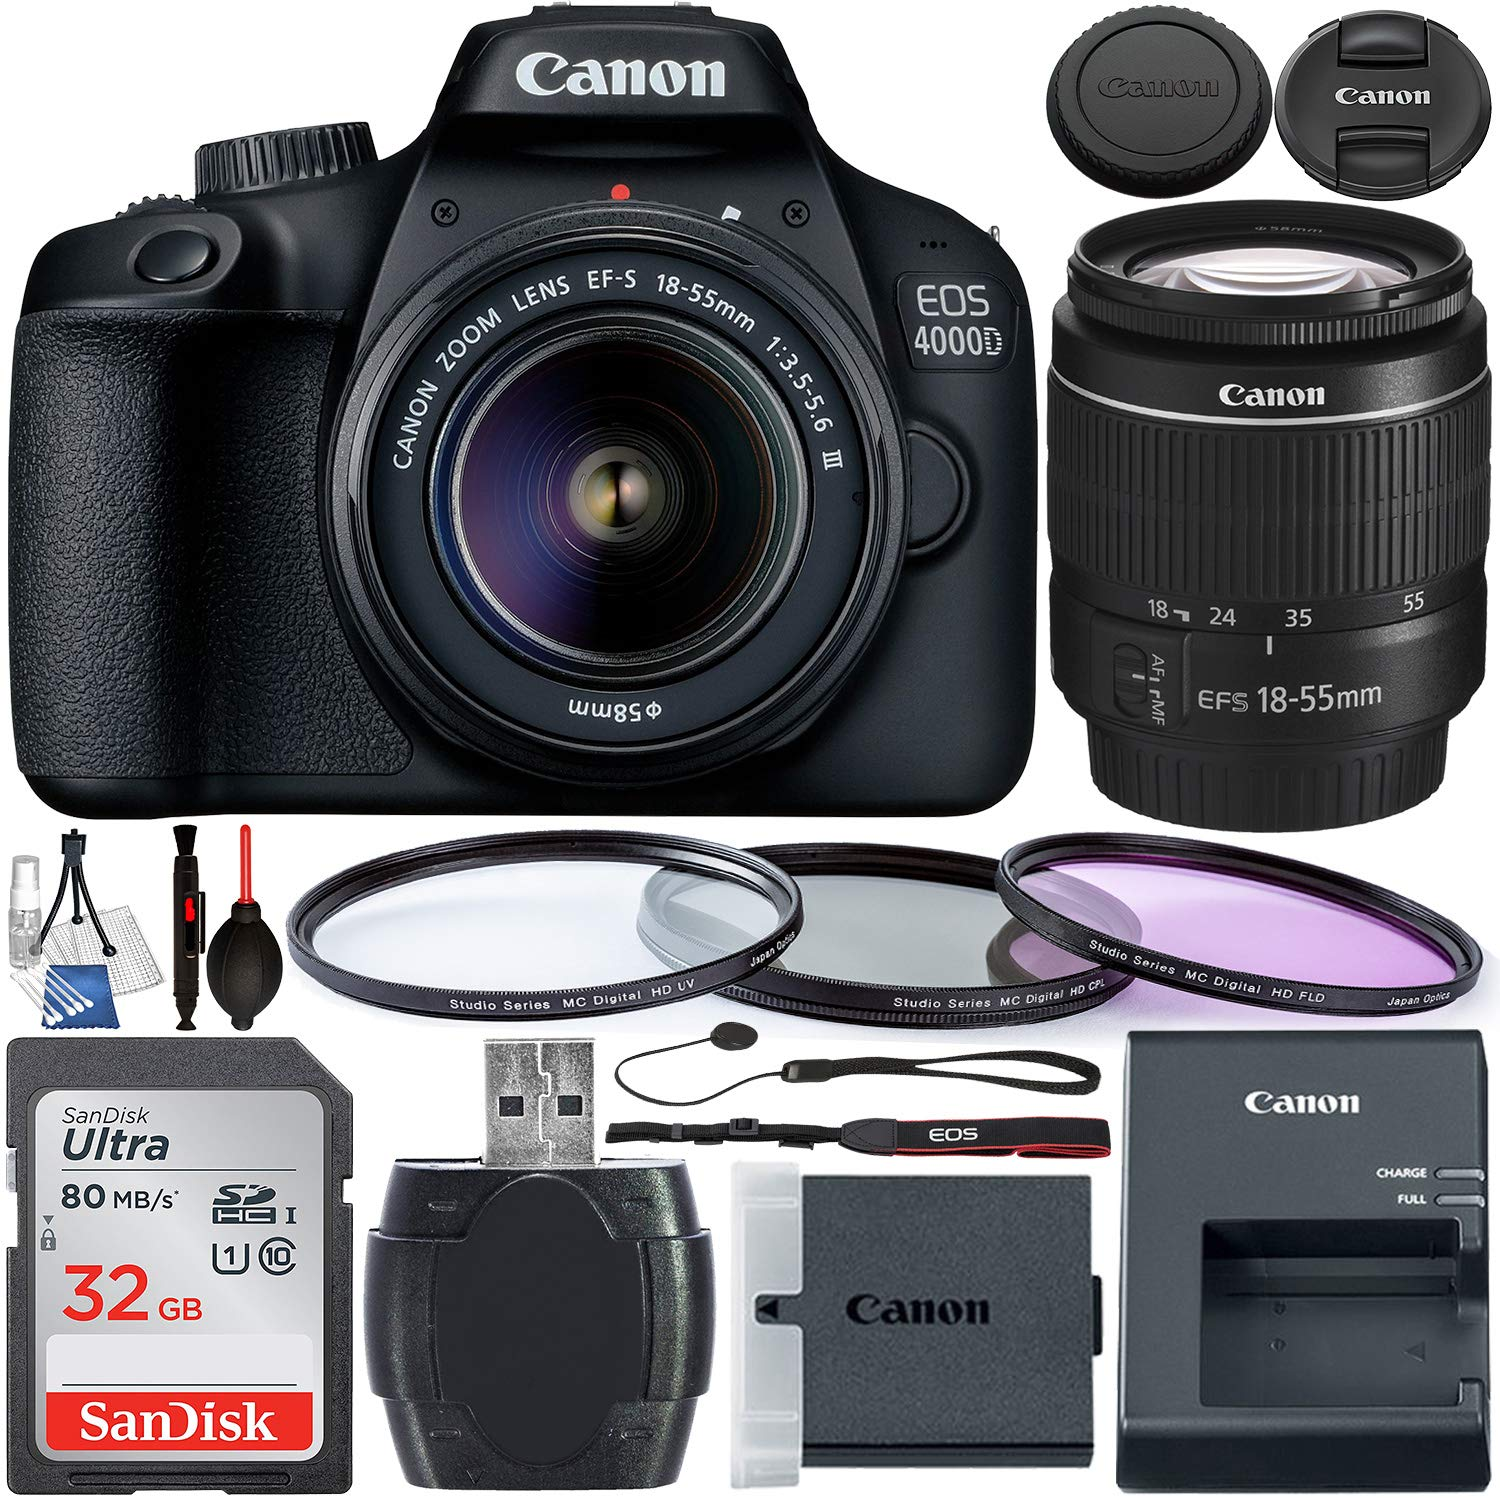 Canon EOS 4000D DSLR Camera with 18-55mm III Lens & Starter Accessory Bundle - Includes: SanDisk Ultra 32GB SDHC Memory Card + 3PC Multi-Coated Filter Set + Memory Card Reader + Cleaning Kit + More by Canon